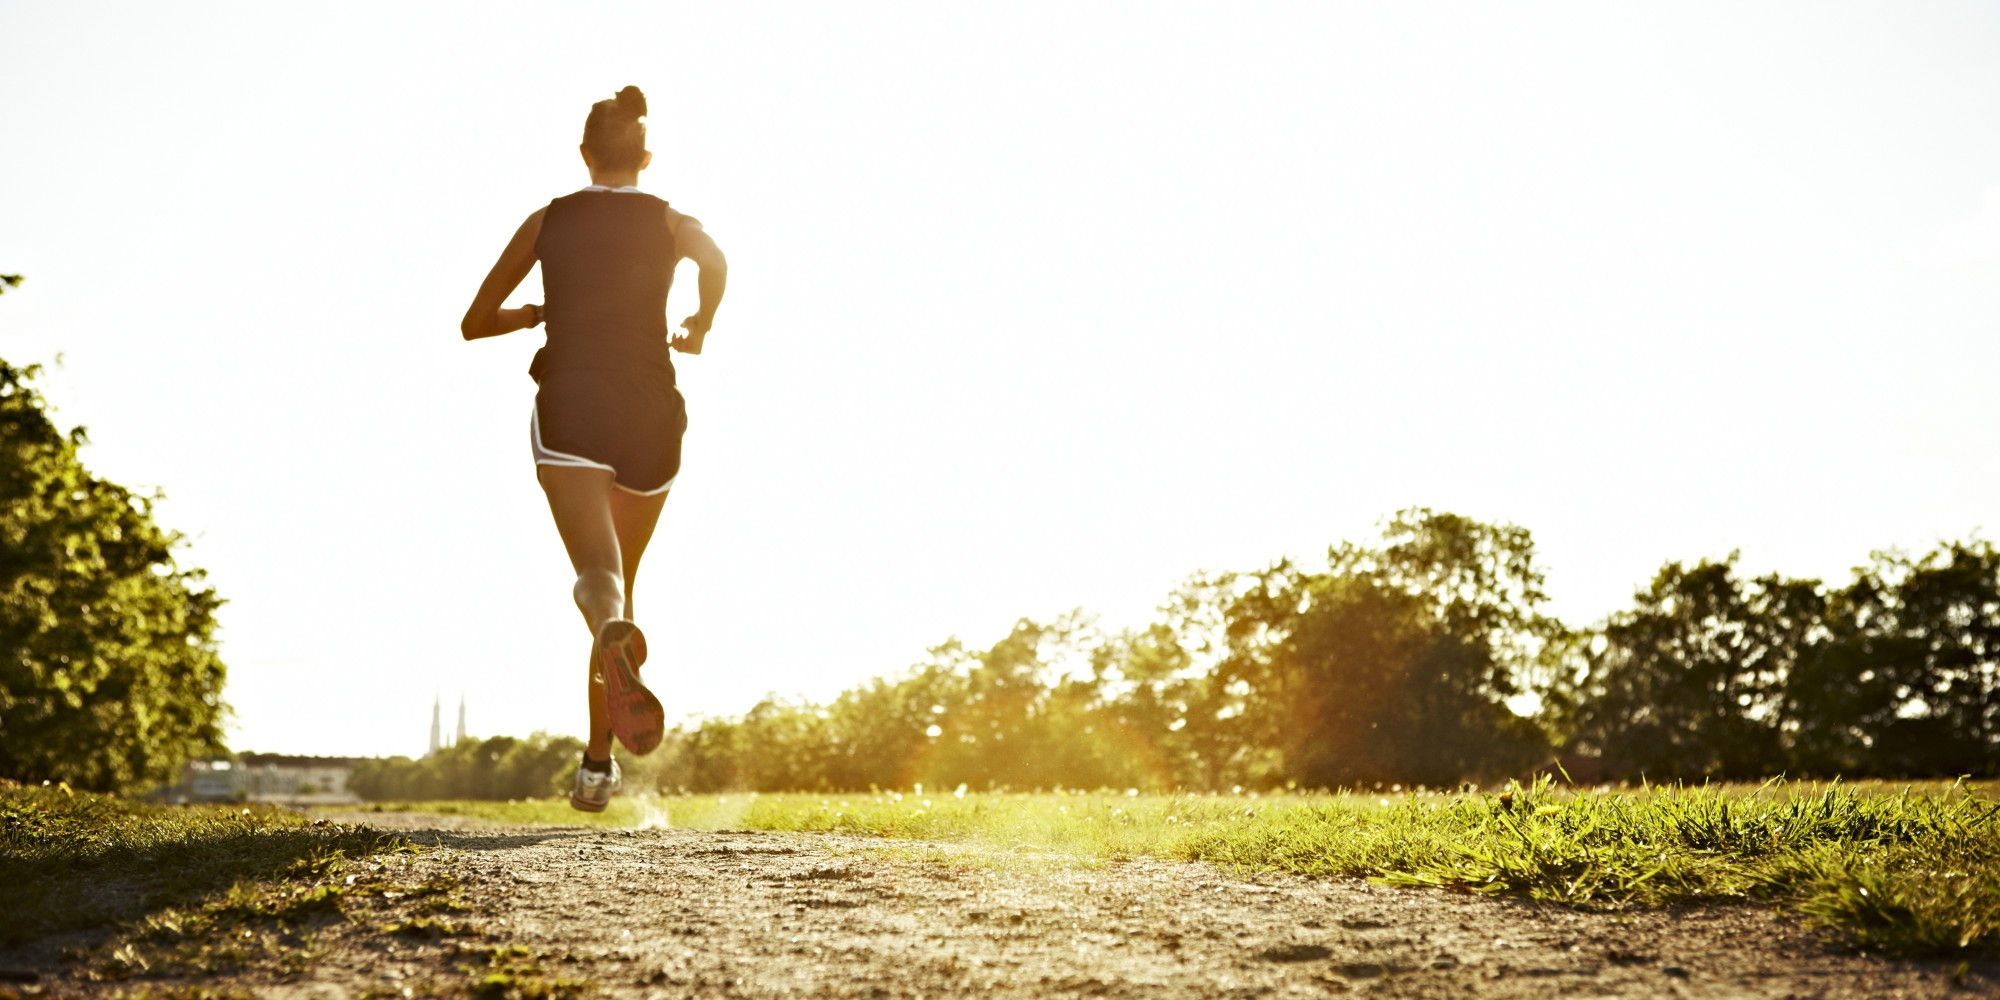 Jogging Run Time How To Run A Faster 5k Toronto Fitness Medium